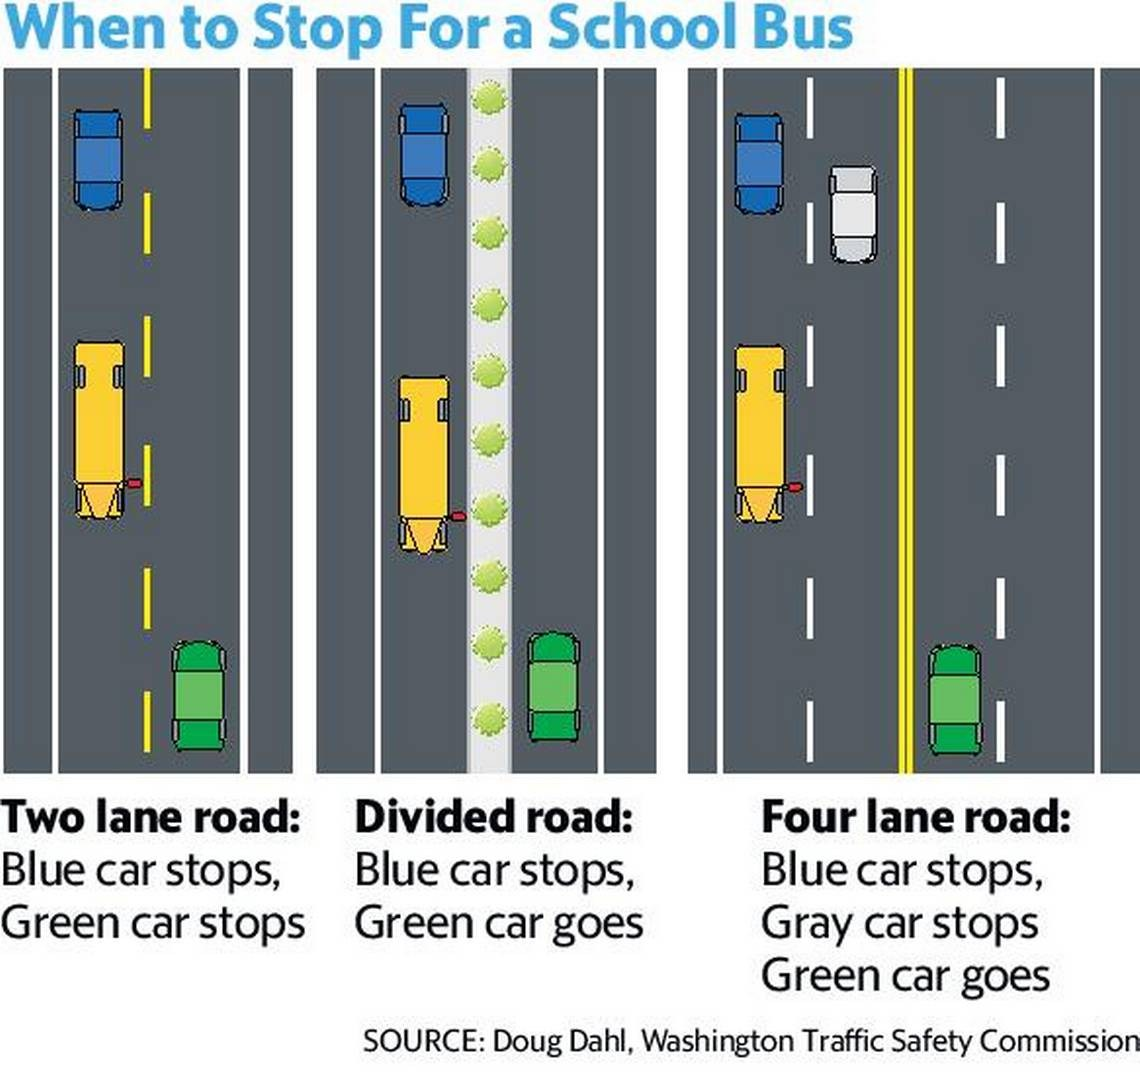 Road rules: how to properly stop for a school bus